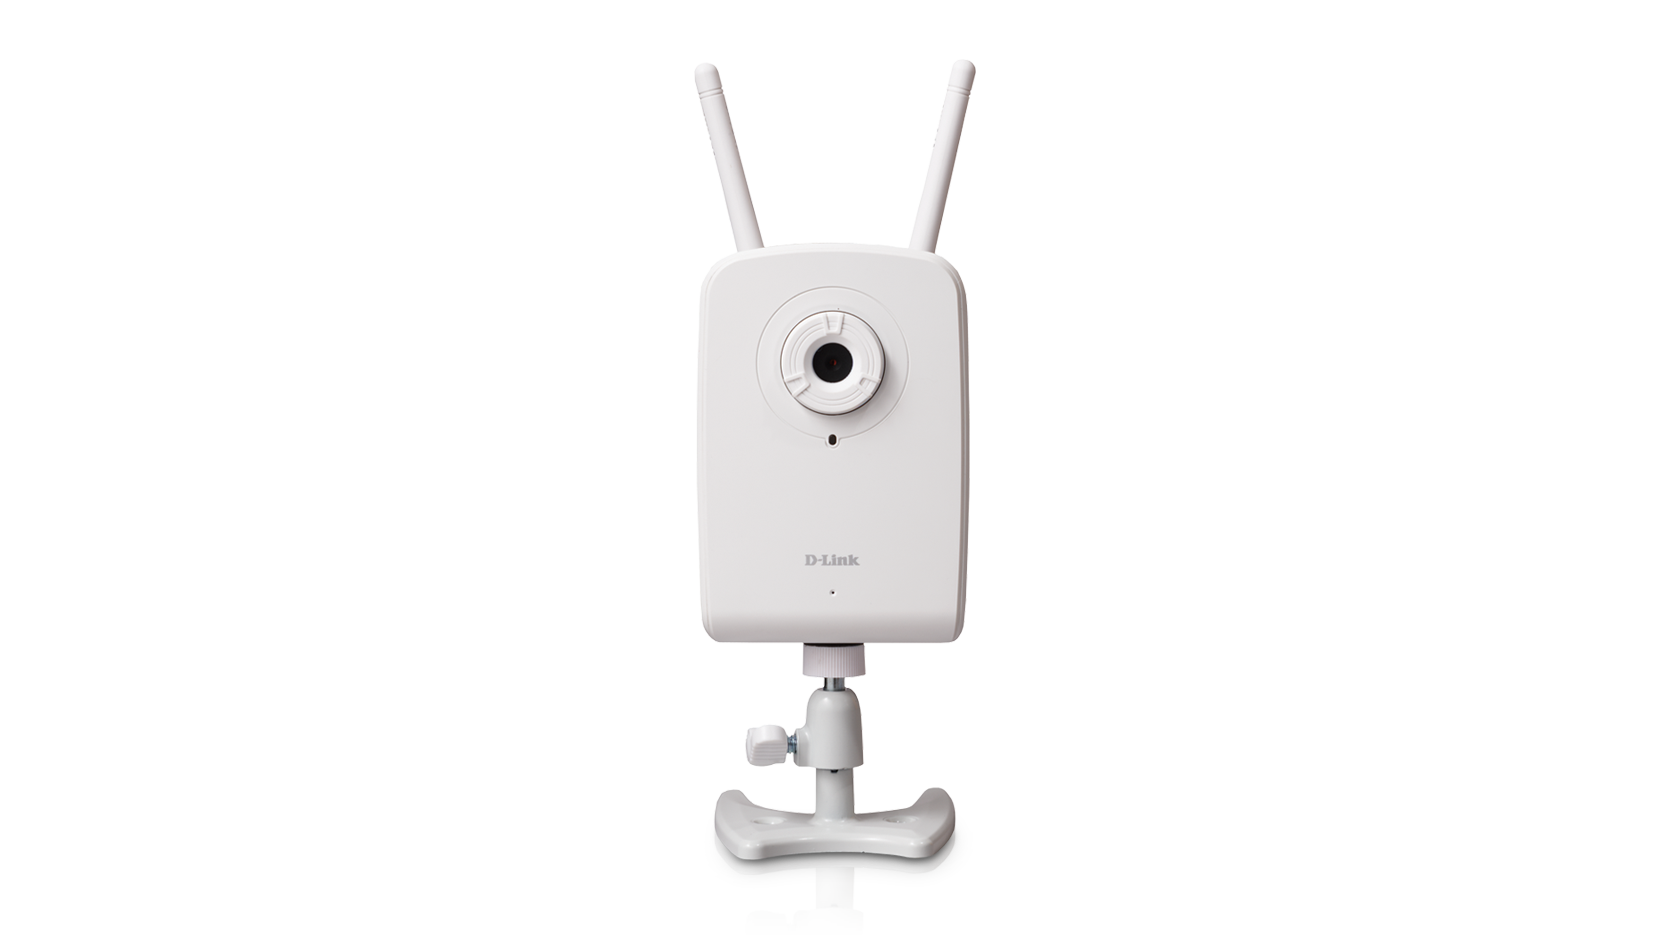 D-LINK DCS-1130 IP CAMERA WINDOWS 8 DRIVER